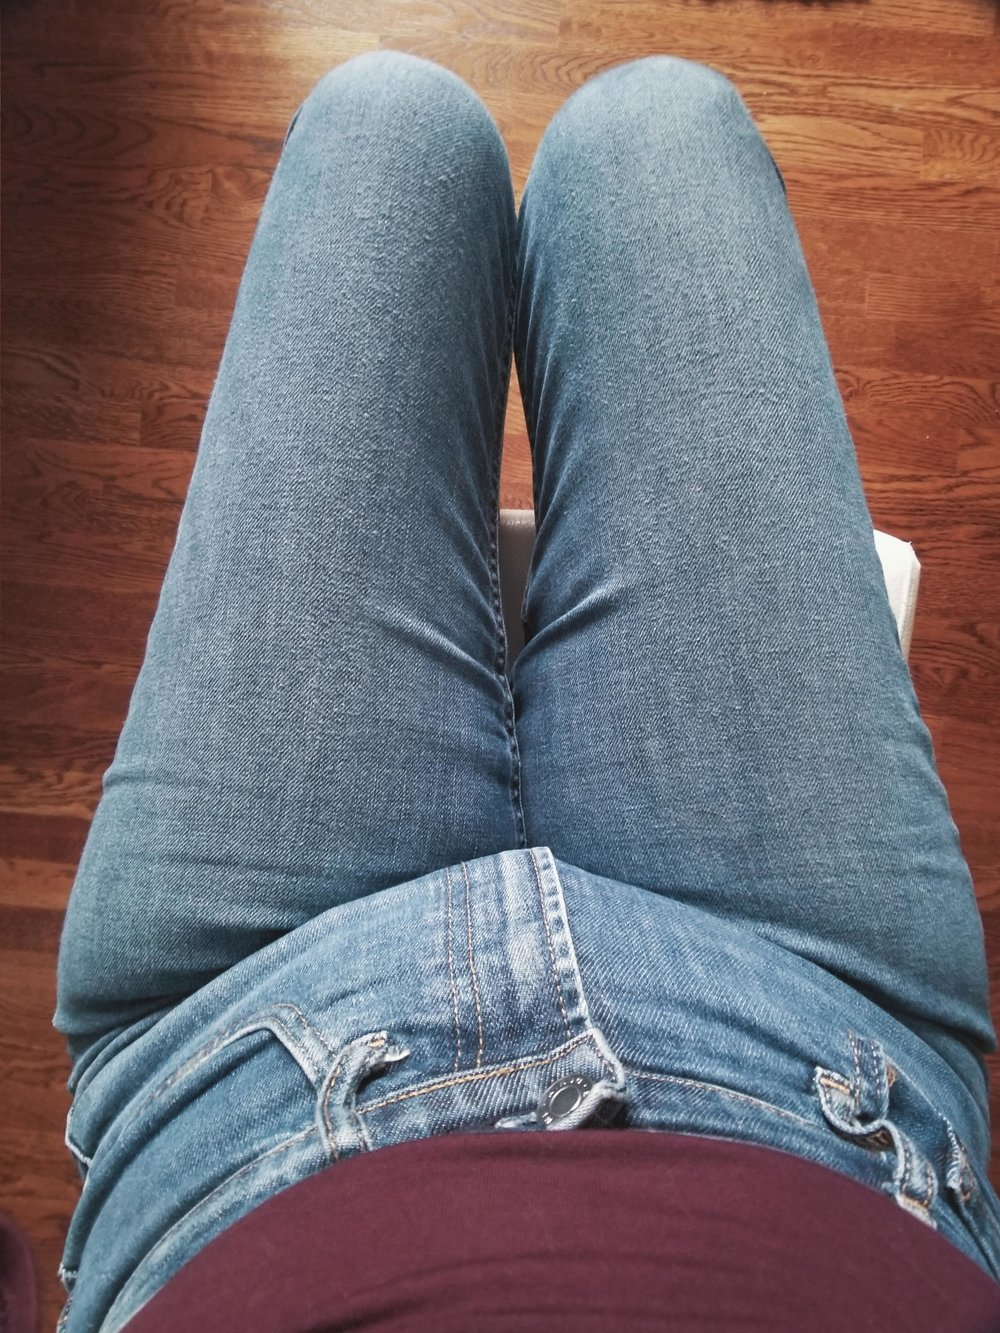 A very unflattering angle but you can see the brushed texture on the thighs.